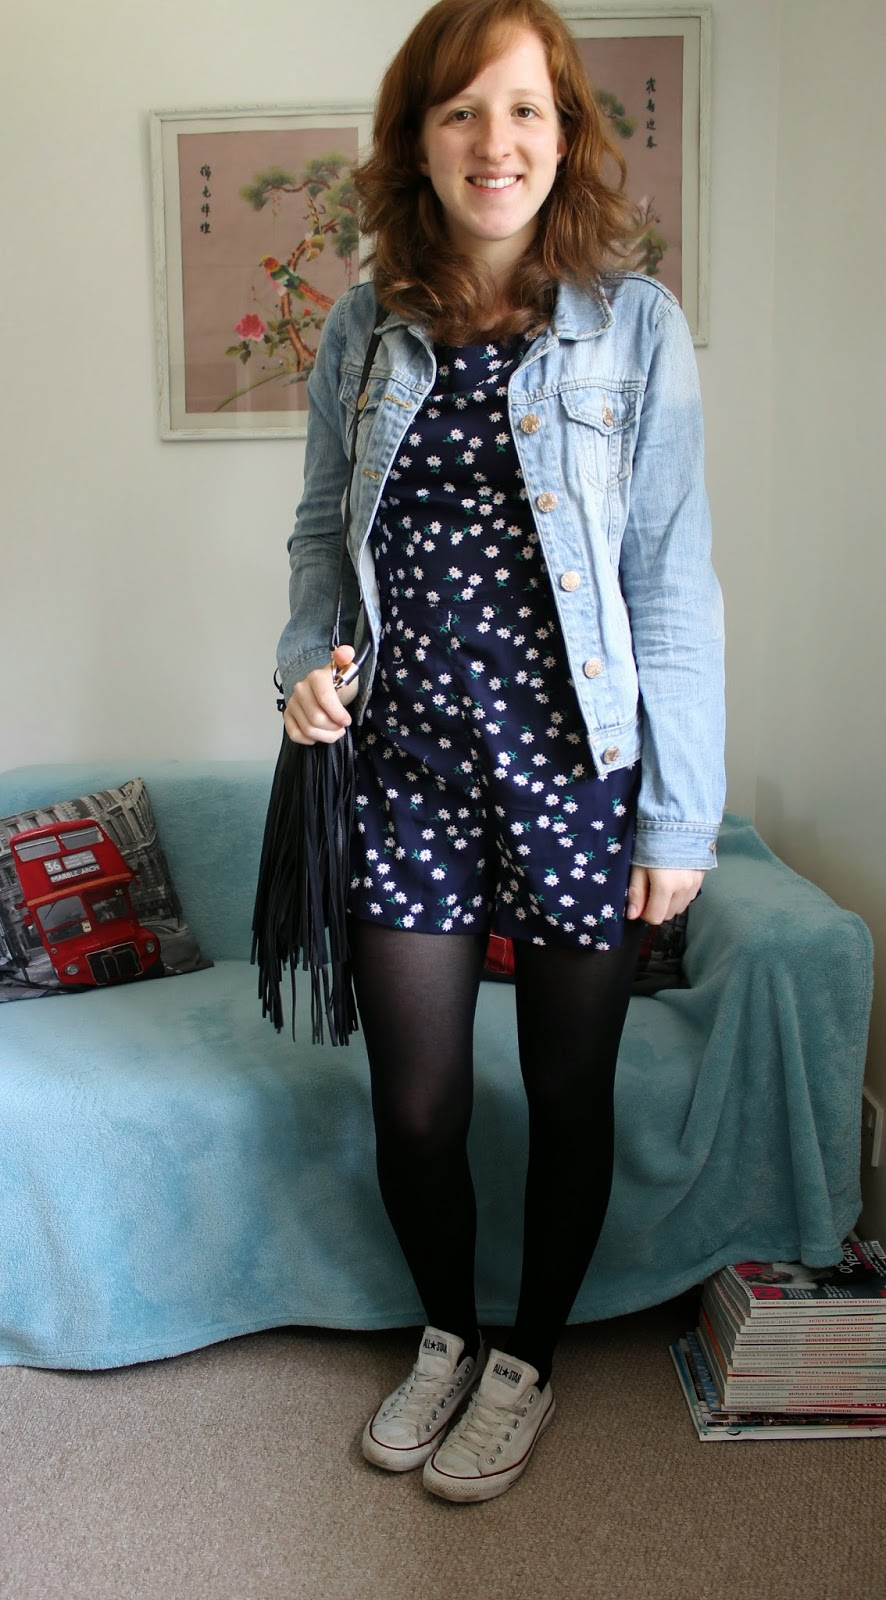 Outfit of the day Daisy Playsuit Denim Jacket and Converse